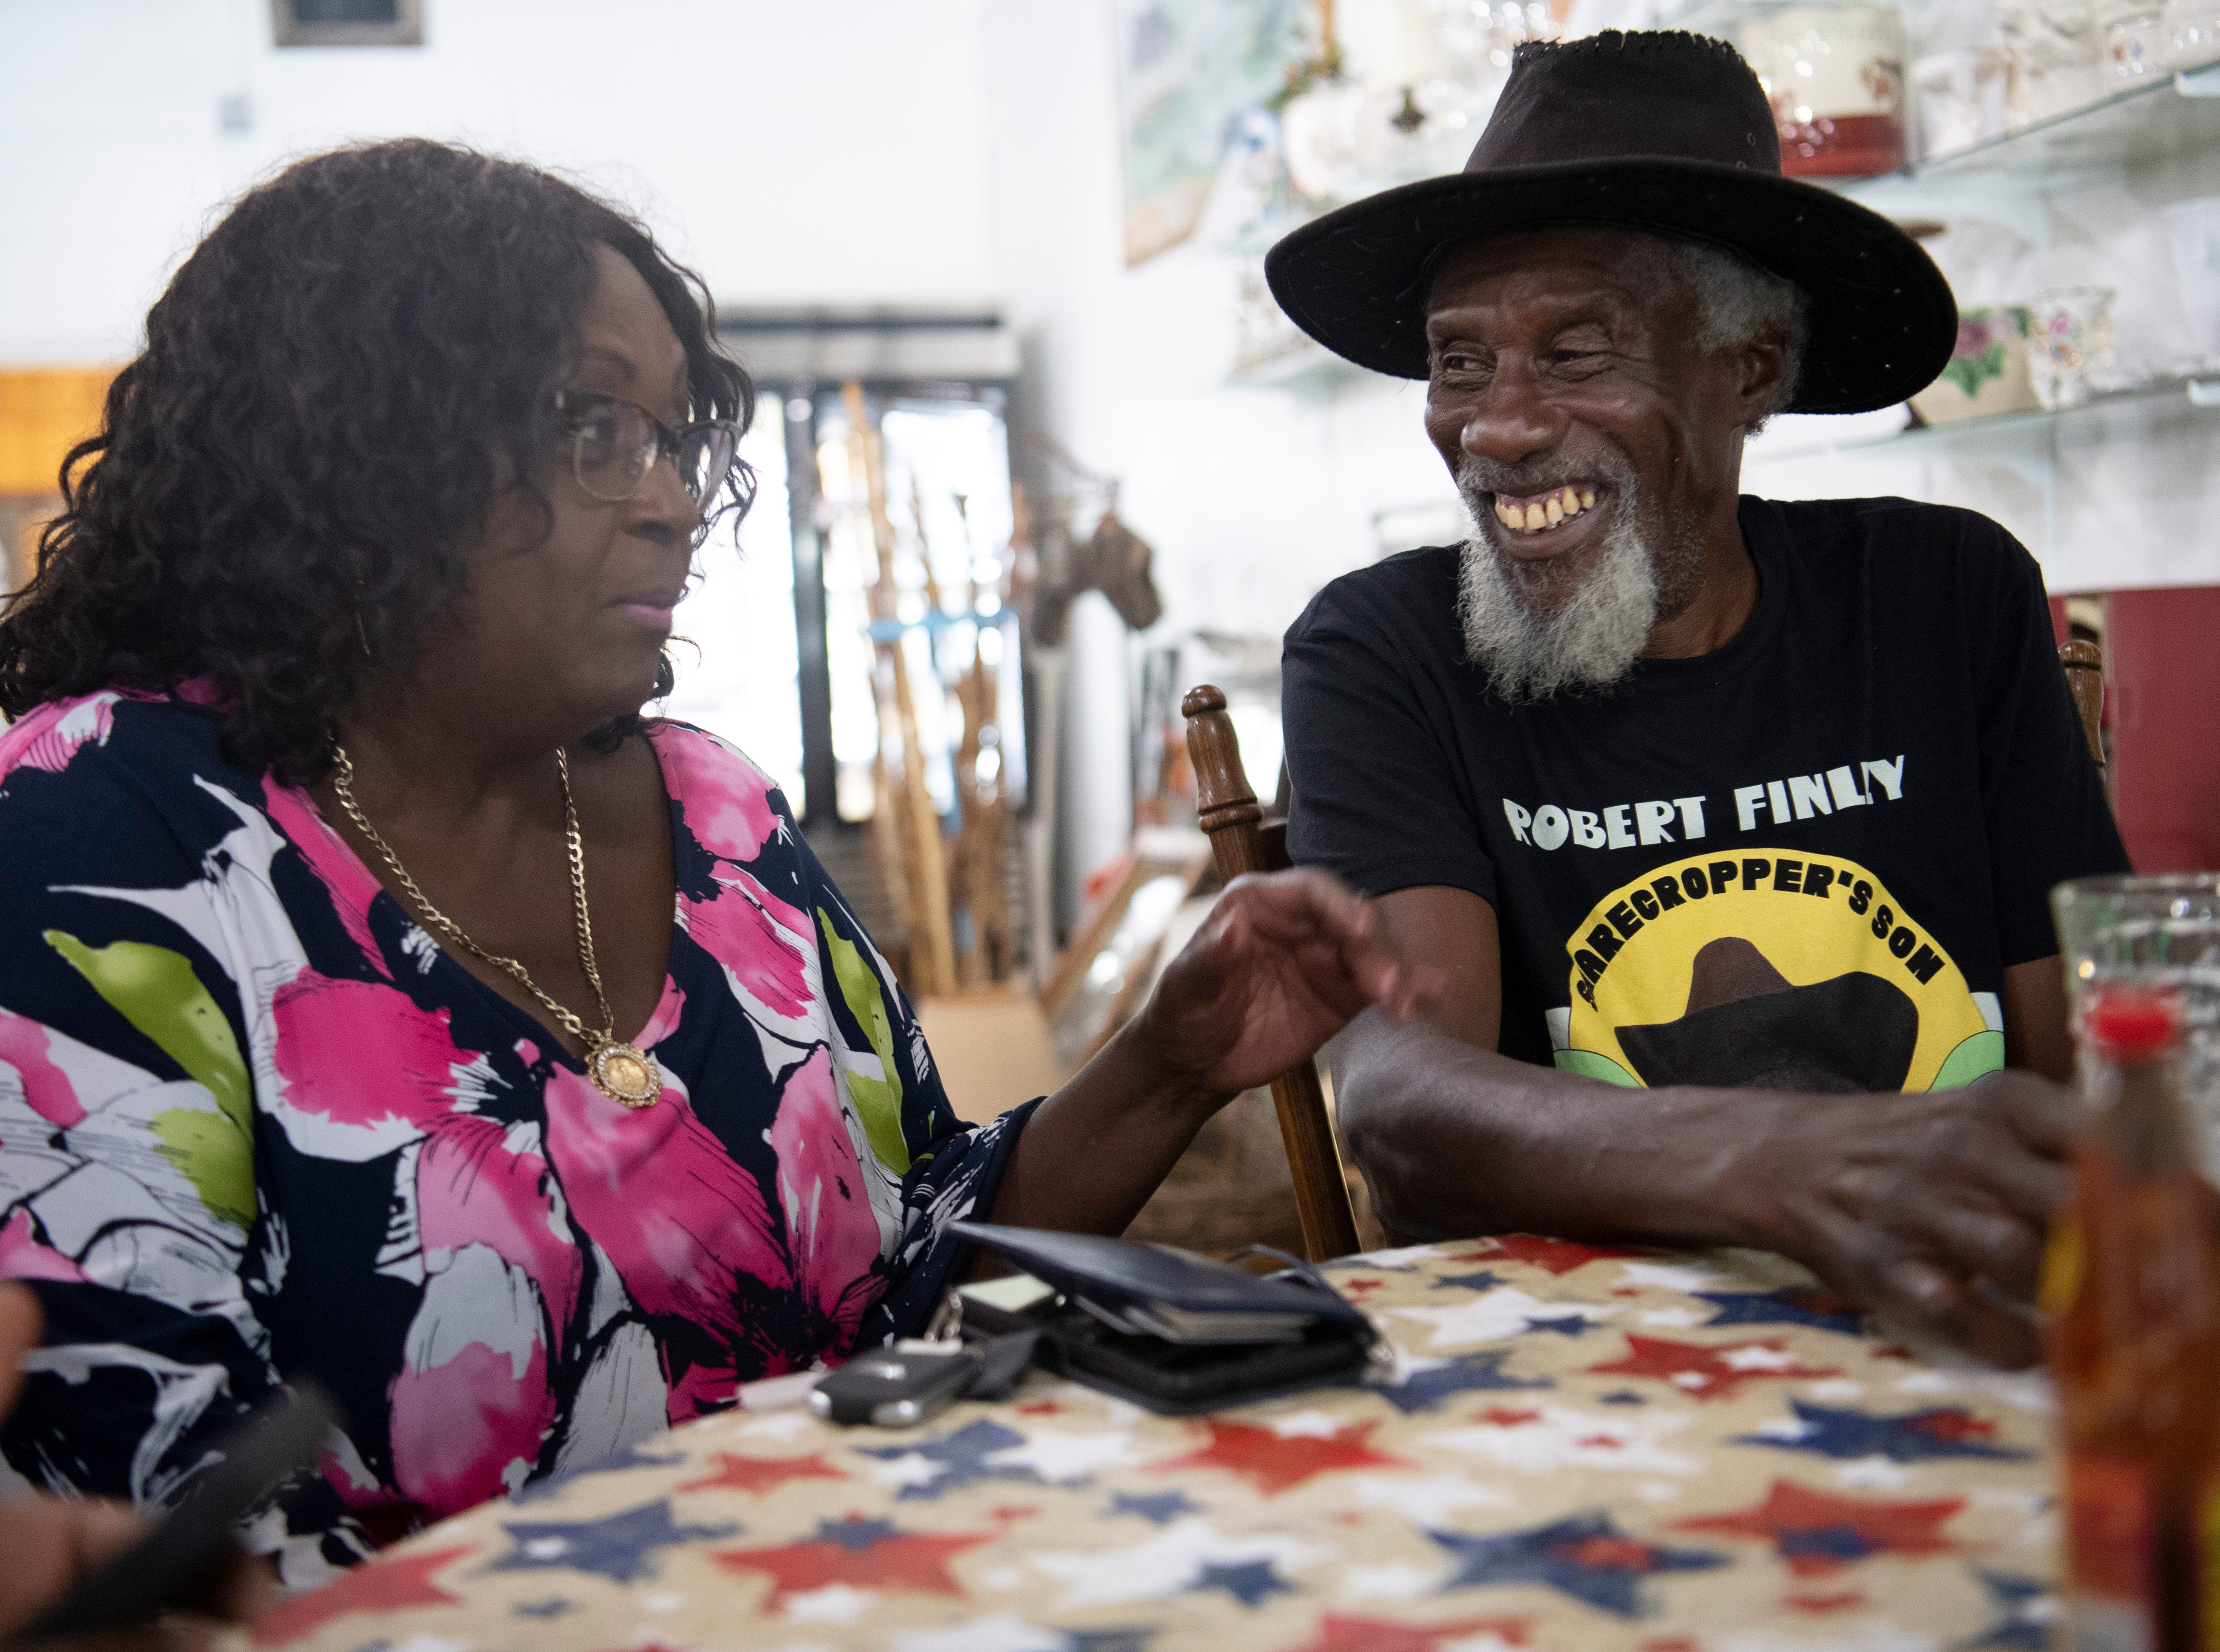 """Mildred Ferguson gets ready to eat with Robert Finley at a restaurant in Bernice, La.  """"He can sing with the kings and beggars, and he's the same,"""" said Ferguson, who is the mayor of Bernice and a longtime friend. Photographed Friday, July 16, 2021."""